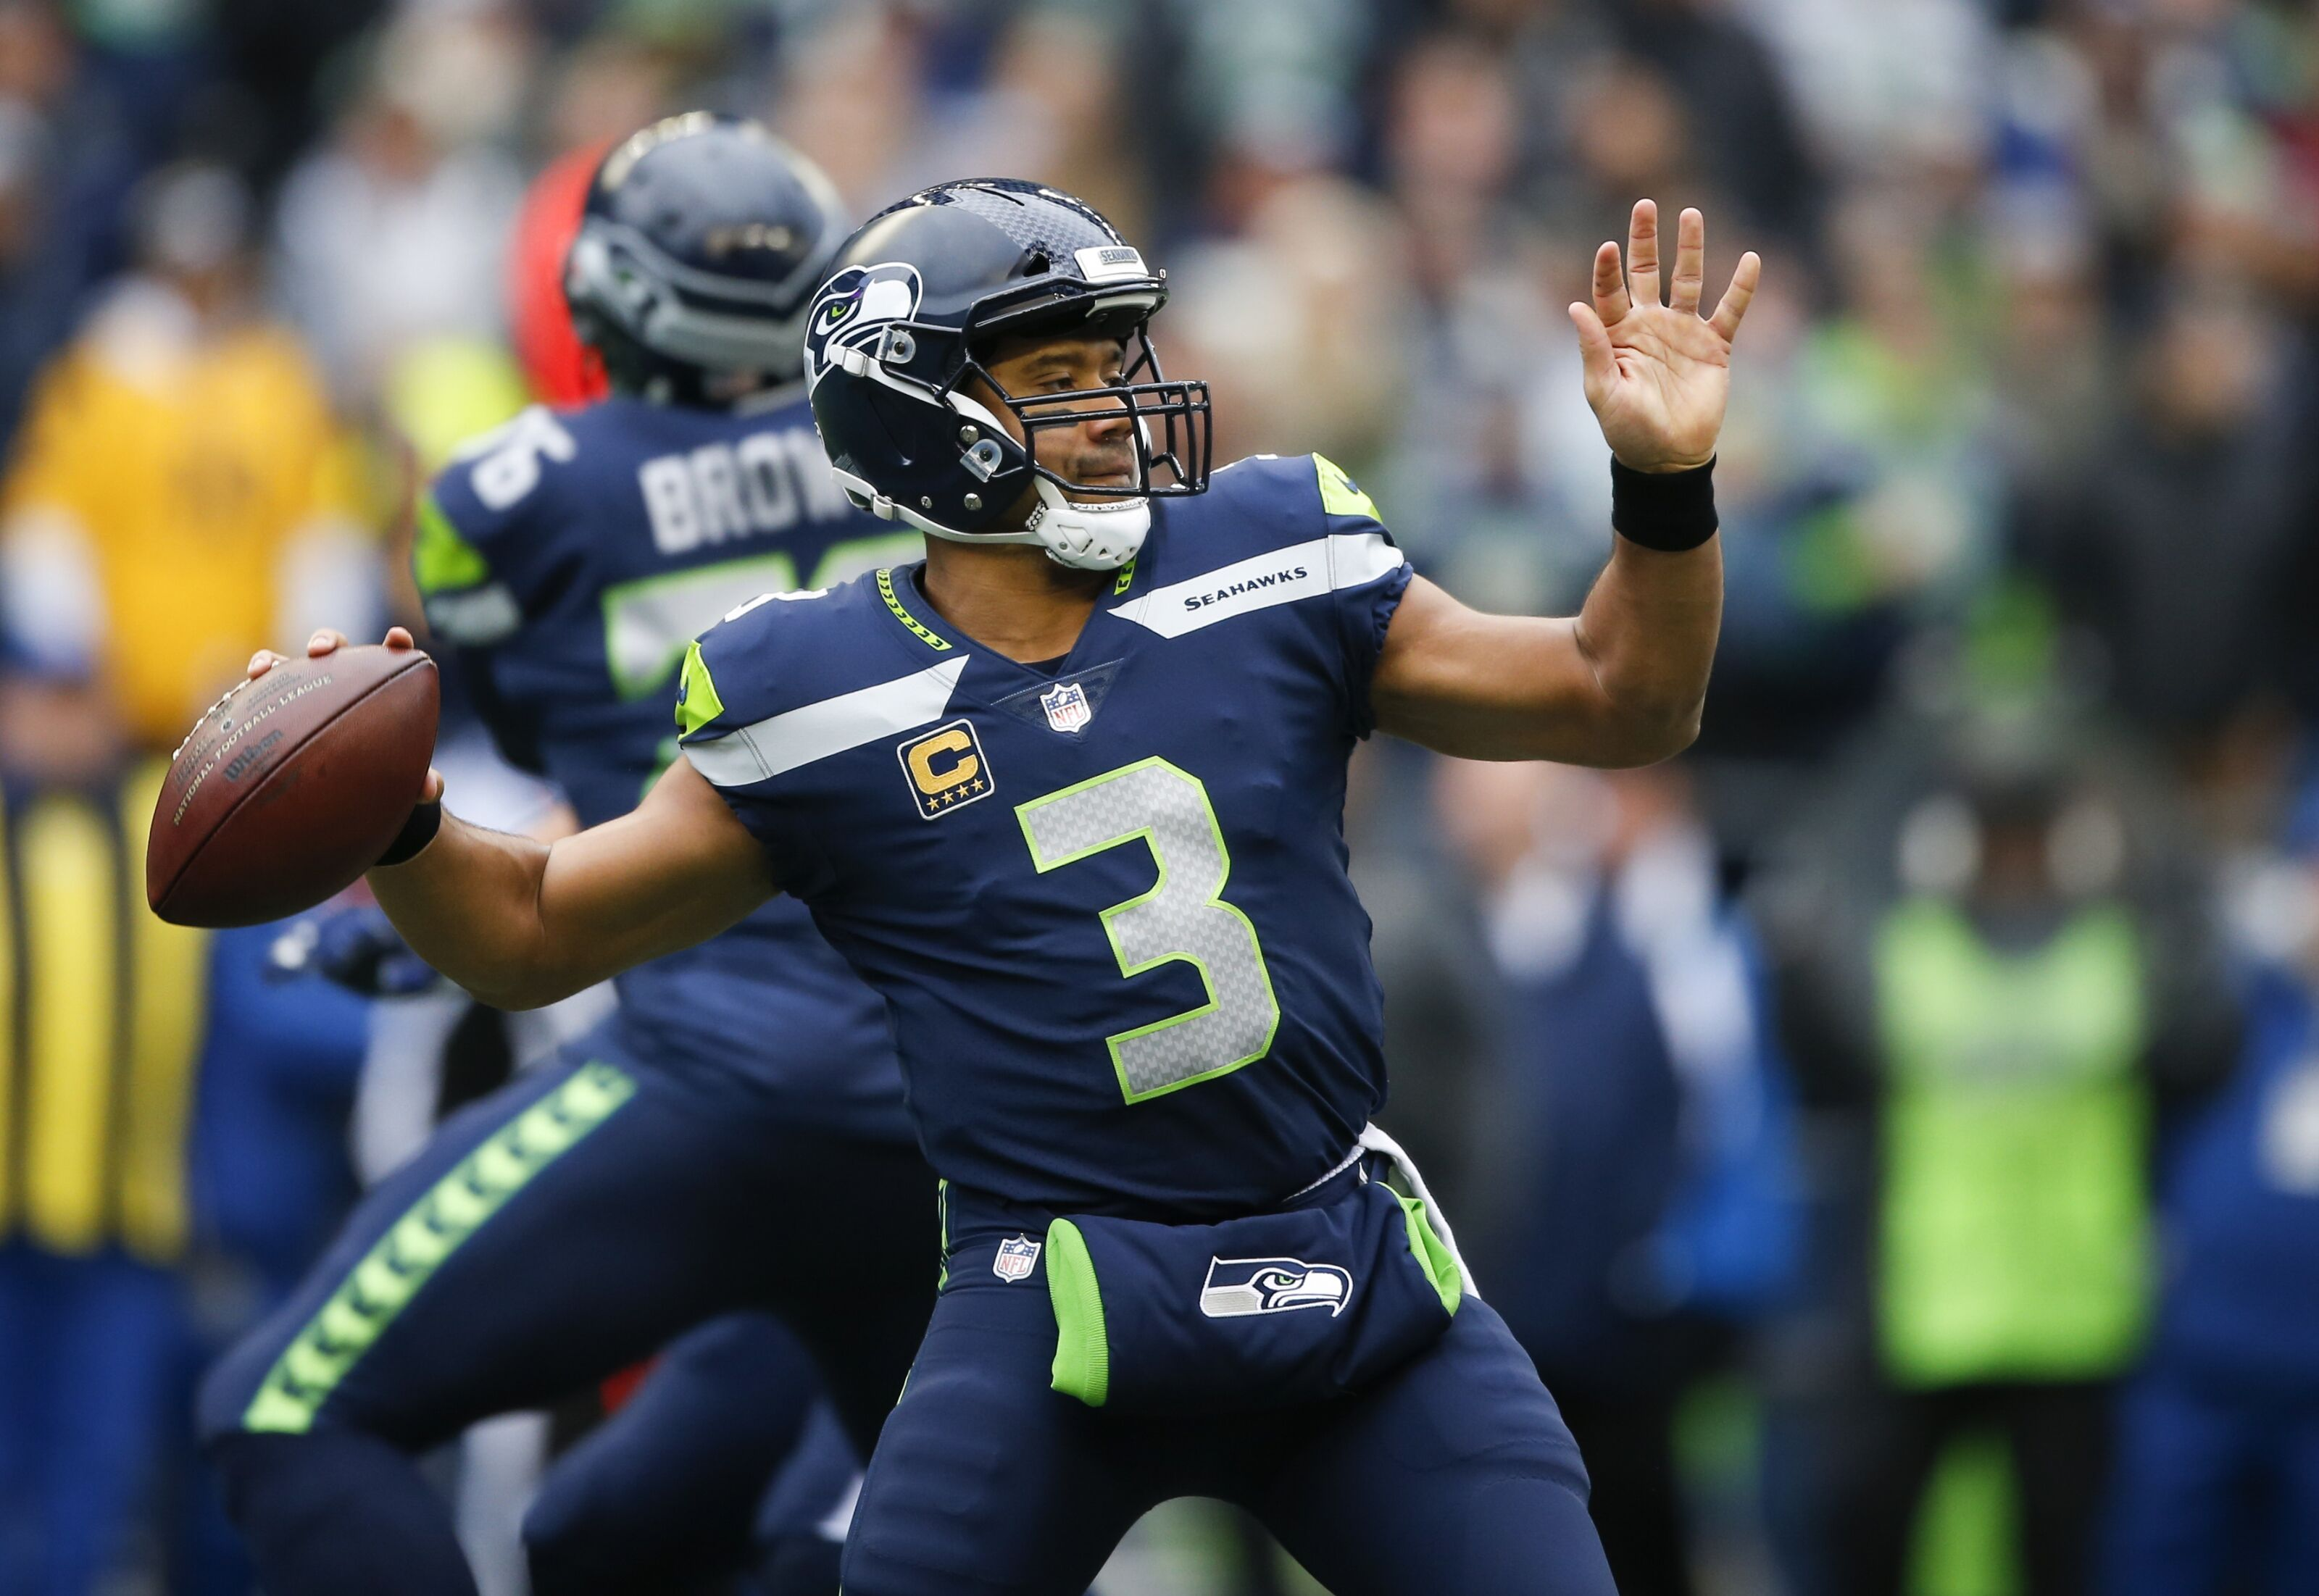 Seahawks better sign Russell Wilson to that extension soon 46bd8cdfa